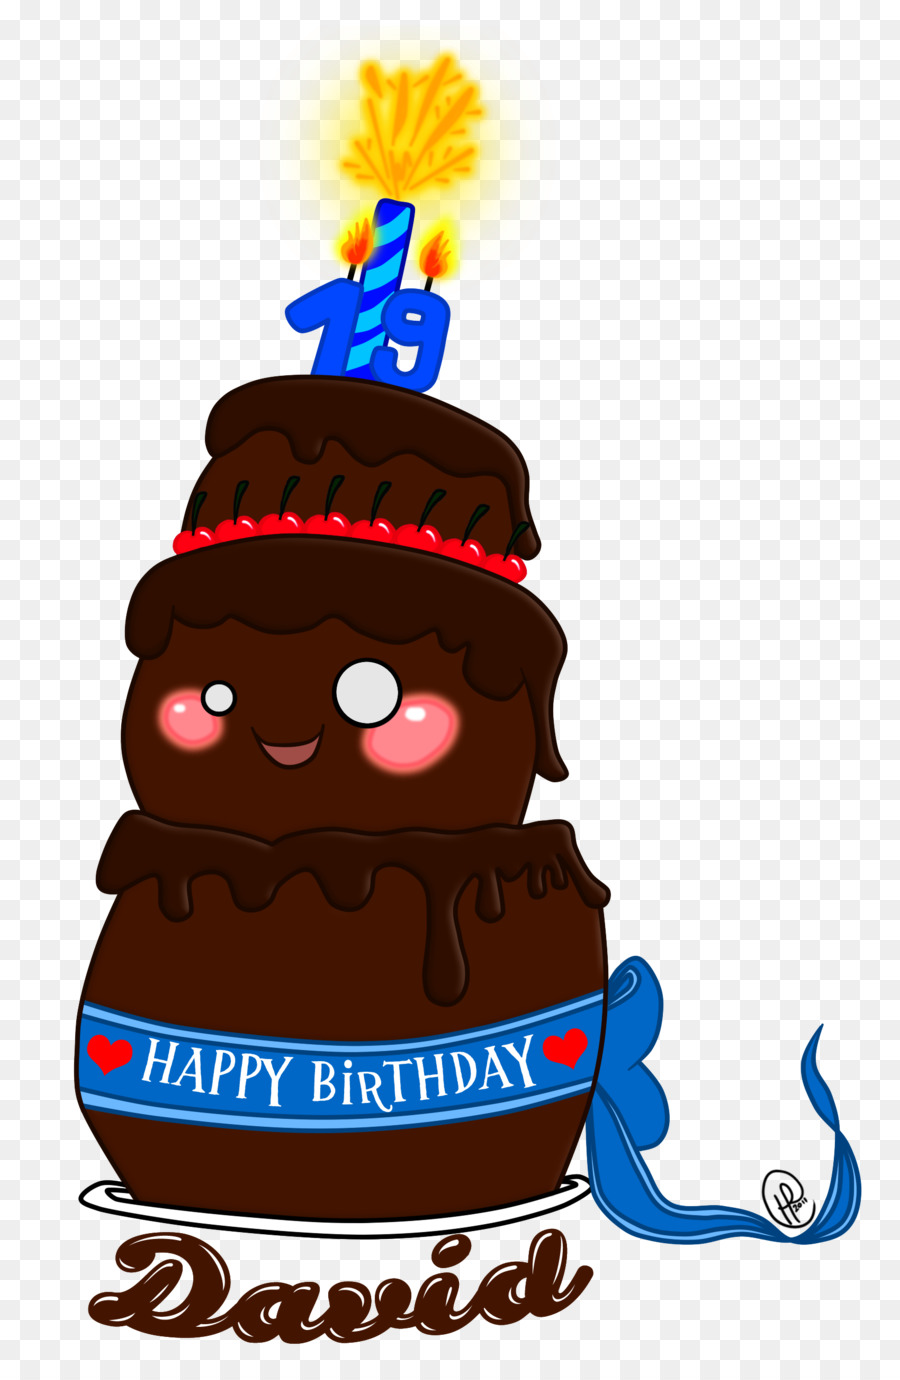 Cake Happy Birthdaytransparent Png Image Clipart Free Download